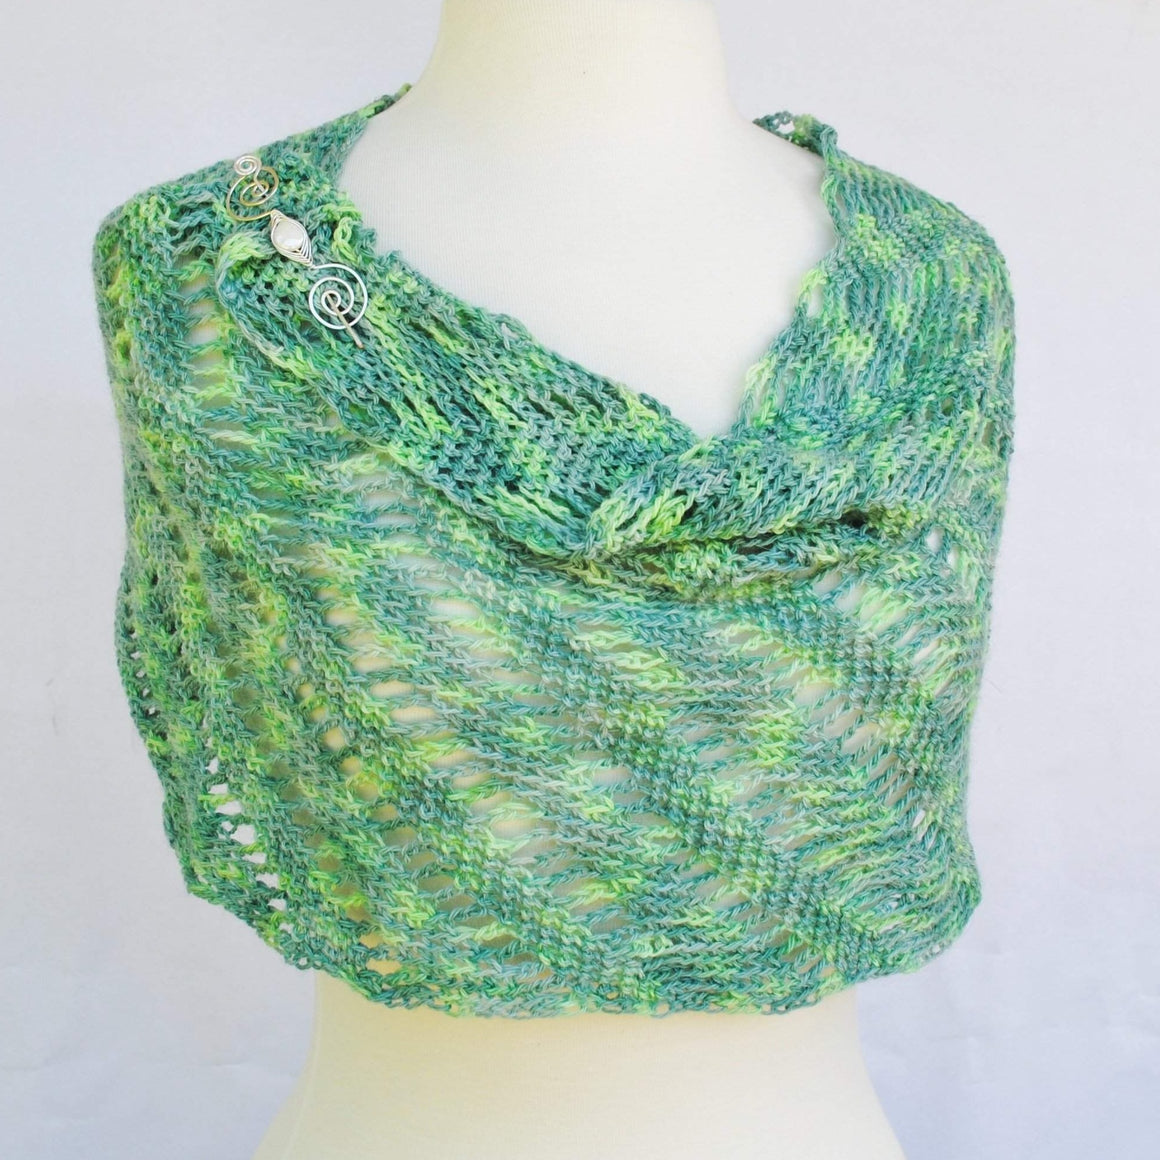 Pattern, Rip Tied Hooked Crochet Infinity Scarf PDF Download - Crafty Flutterby Creations